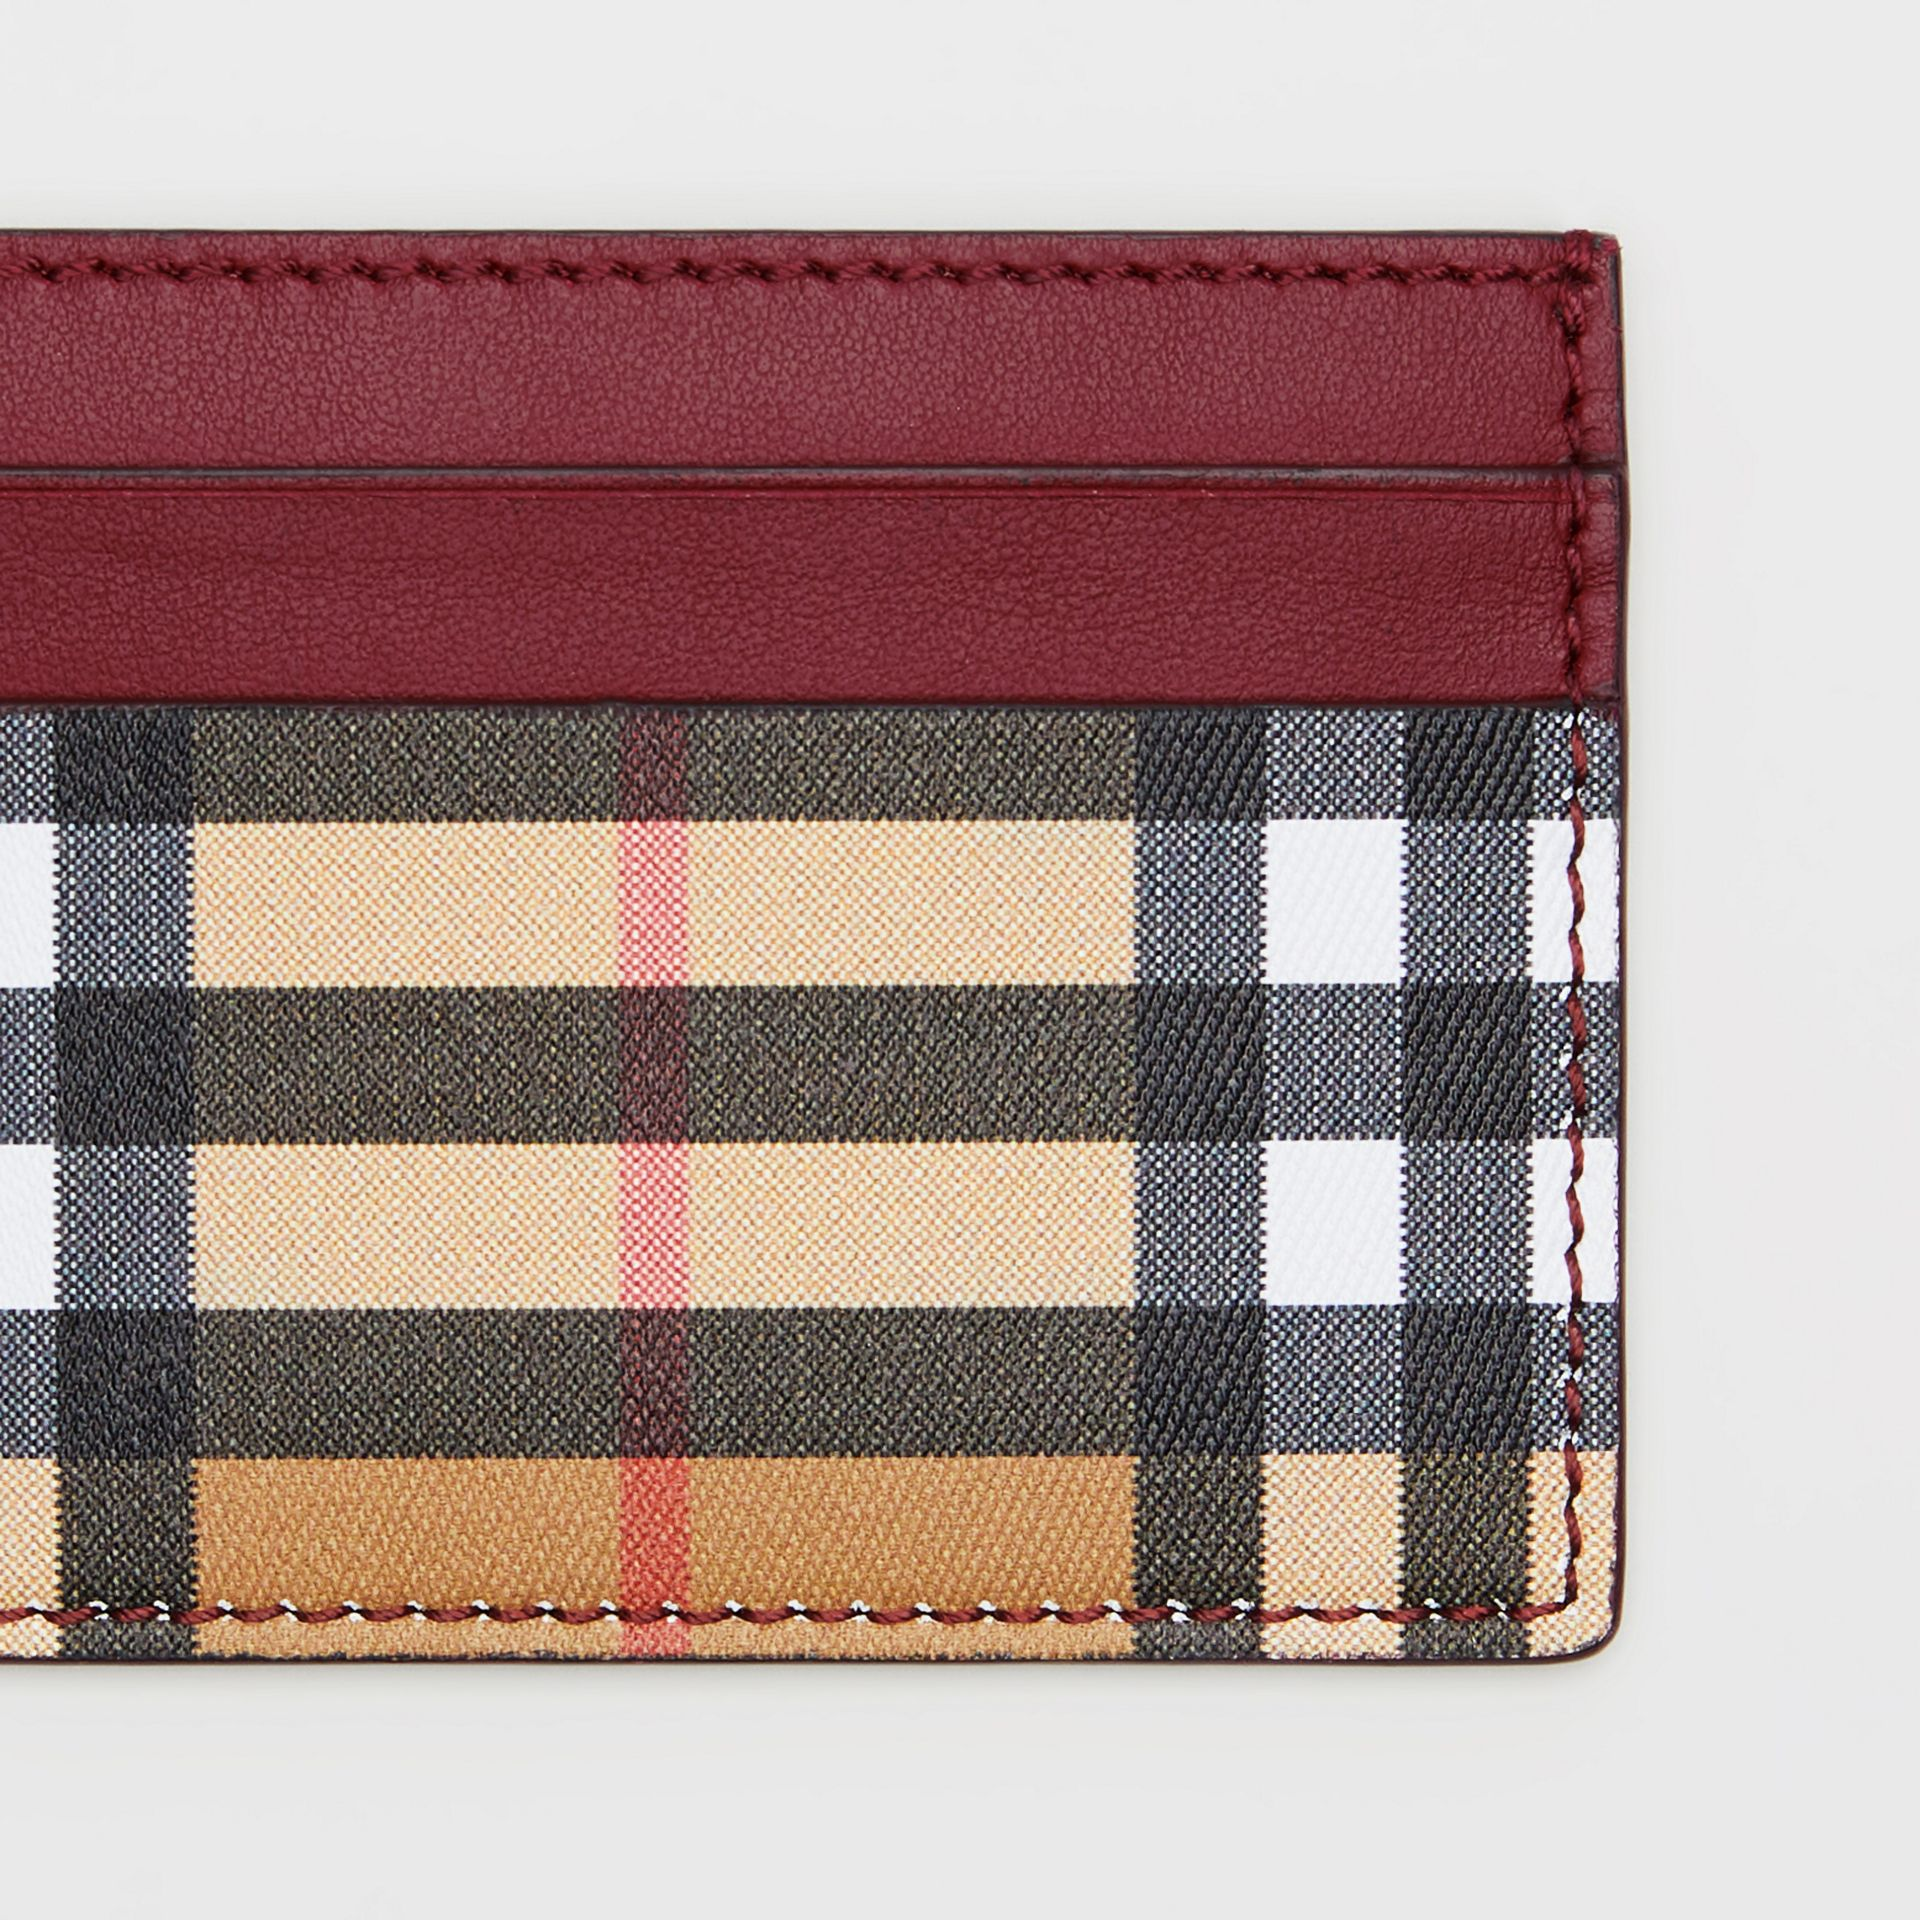 Vintage Check and Leather Card Case in Crimson - Women | Burberry Canada - gallery image 1